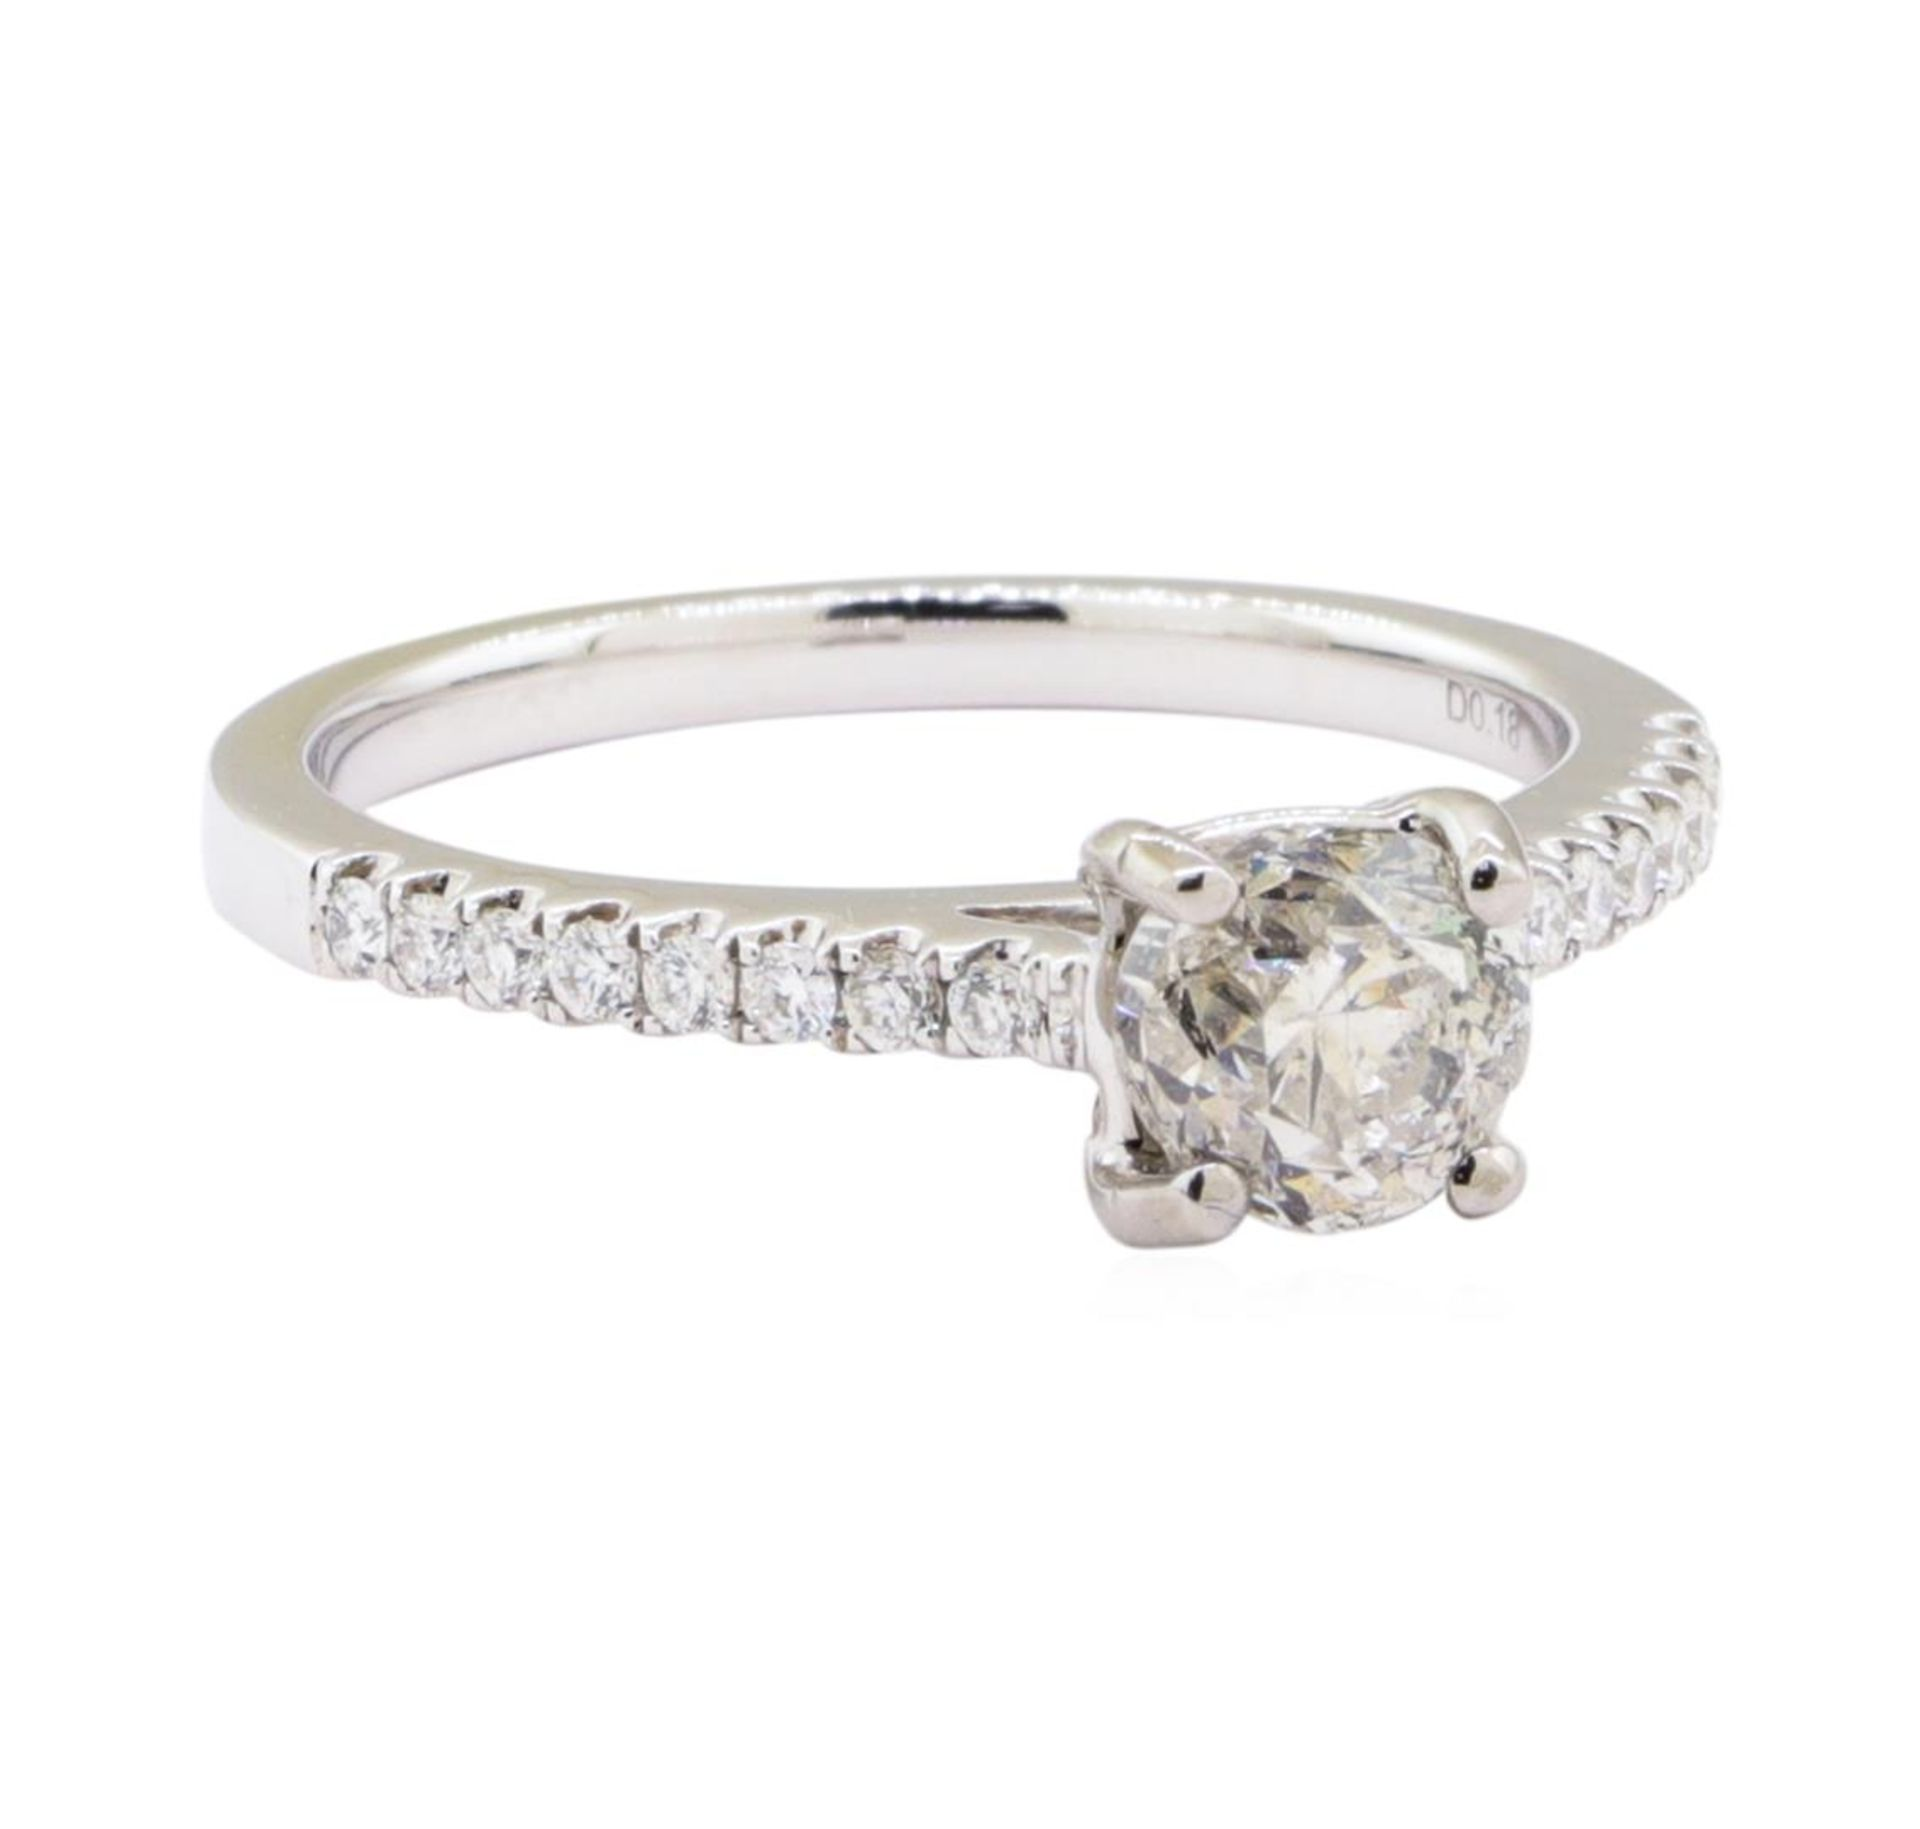 1.07ct Diamond Ring - 18KT White Gold